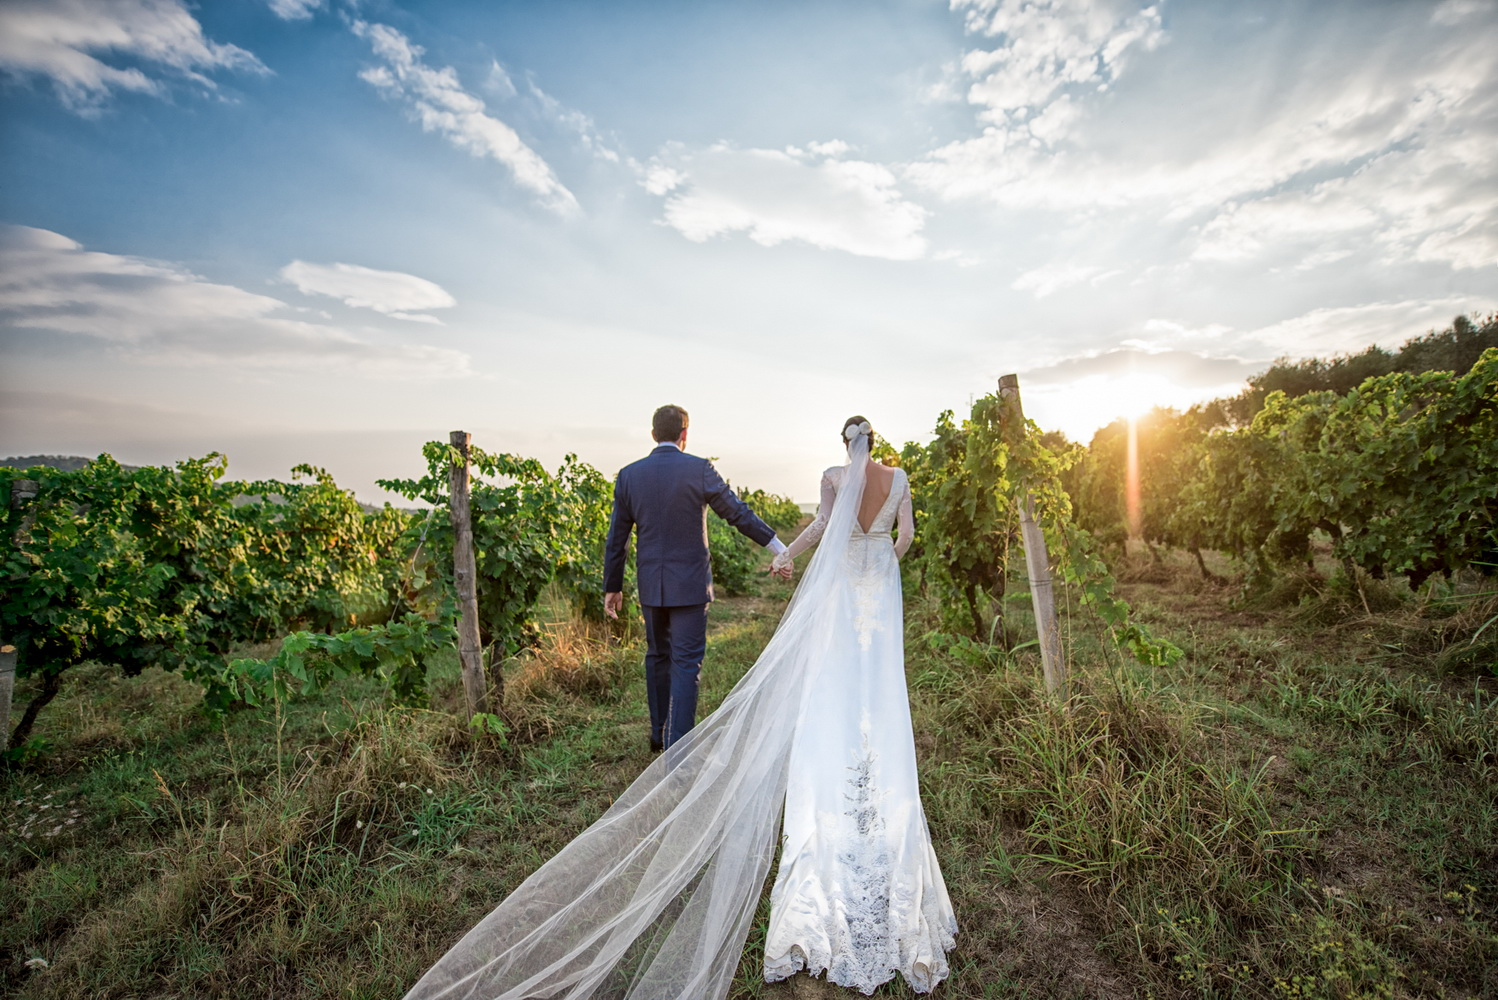 Destination Wedding Toscana | Caroline e Fernando destination wedding na toscana | caroline e fernando Destination Wedding na Toscana | Caroline e Fernando marco zammarchi destination wedding 40